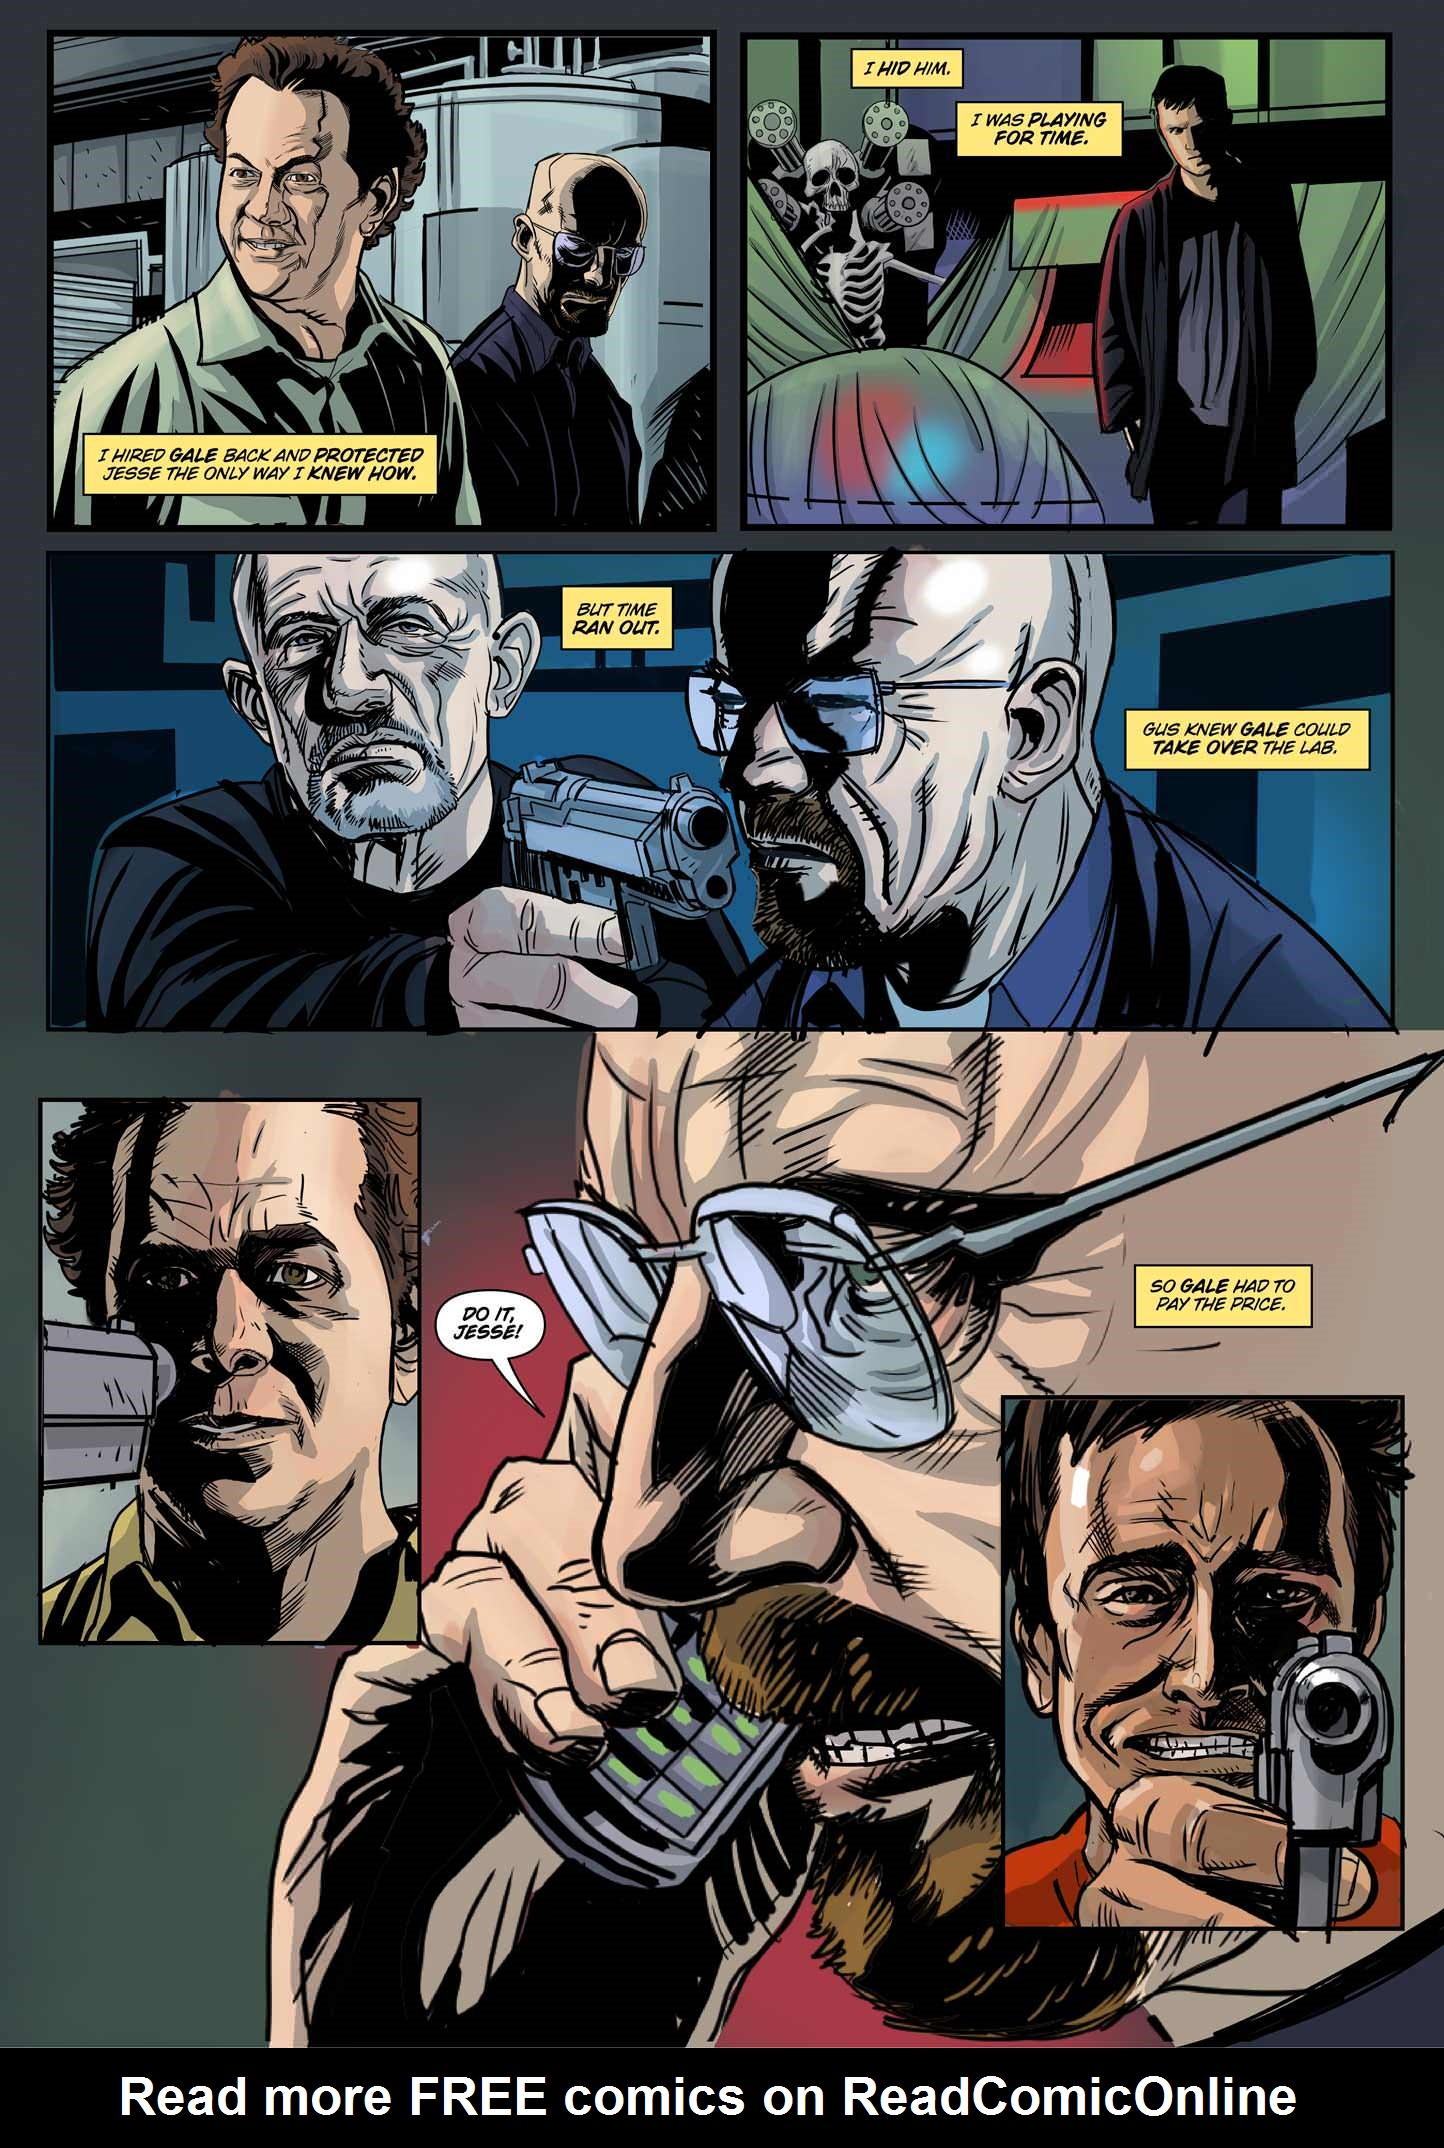 Read online Breaking Bad: All Bad Things comic -  Issue # Full - 13